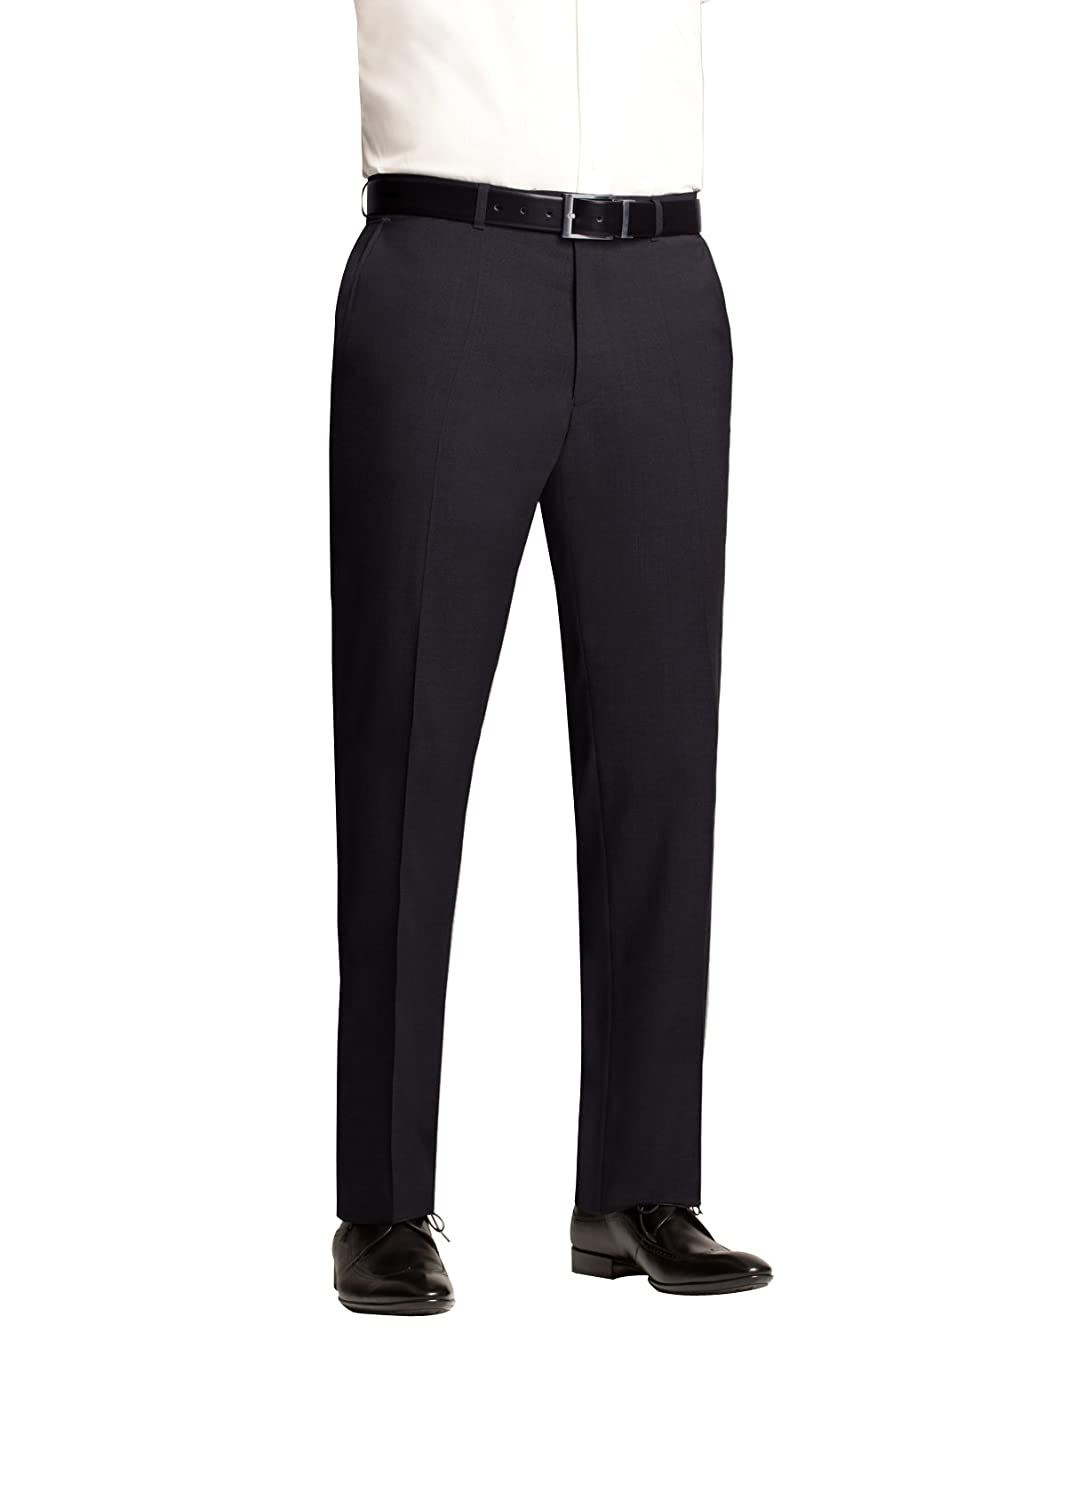 Carl Gross Men's Long - regularSuit Trousers